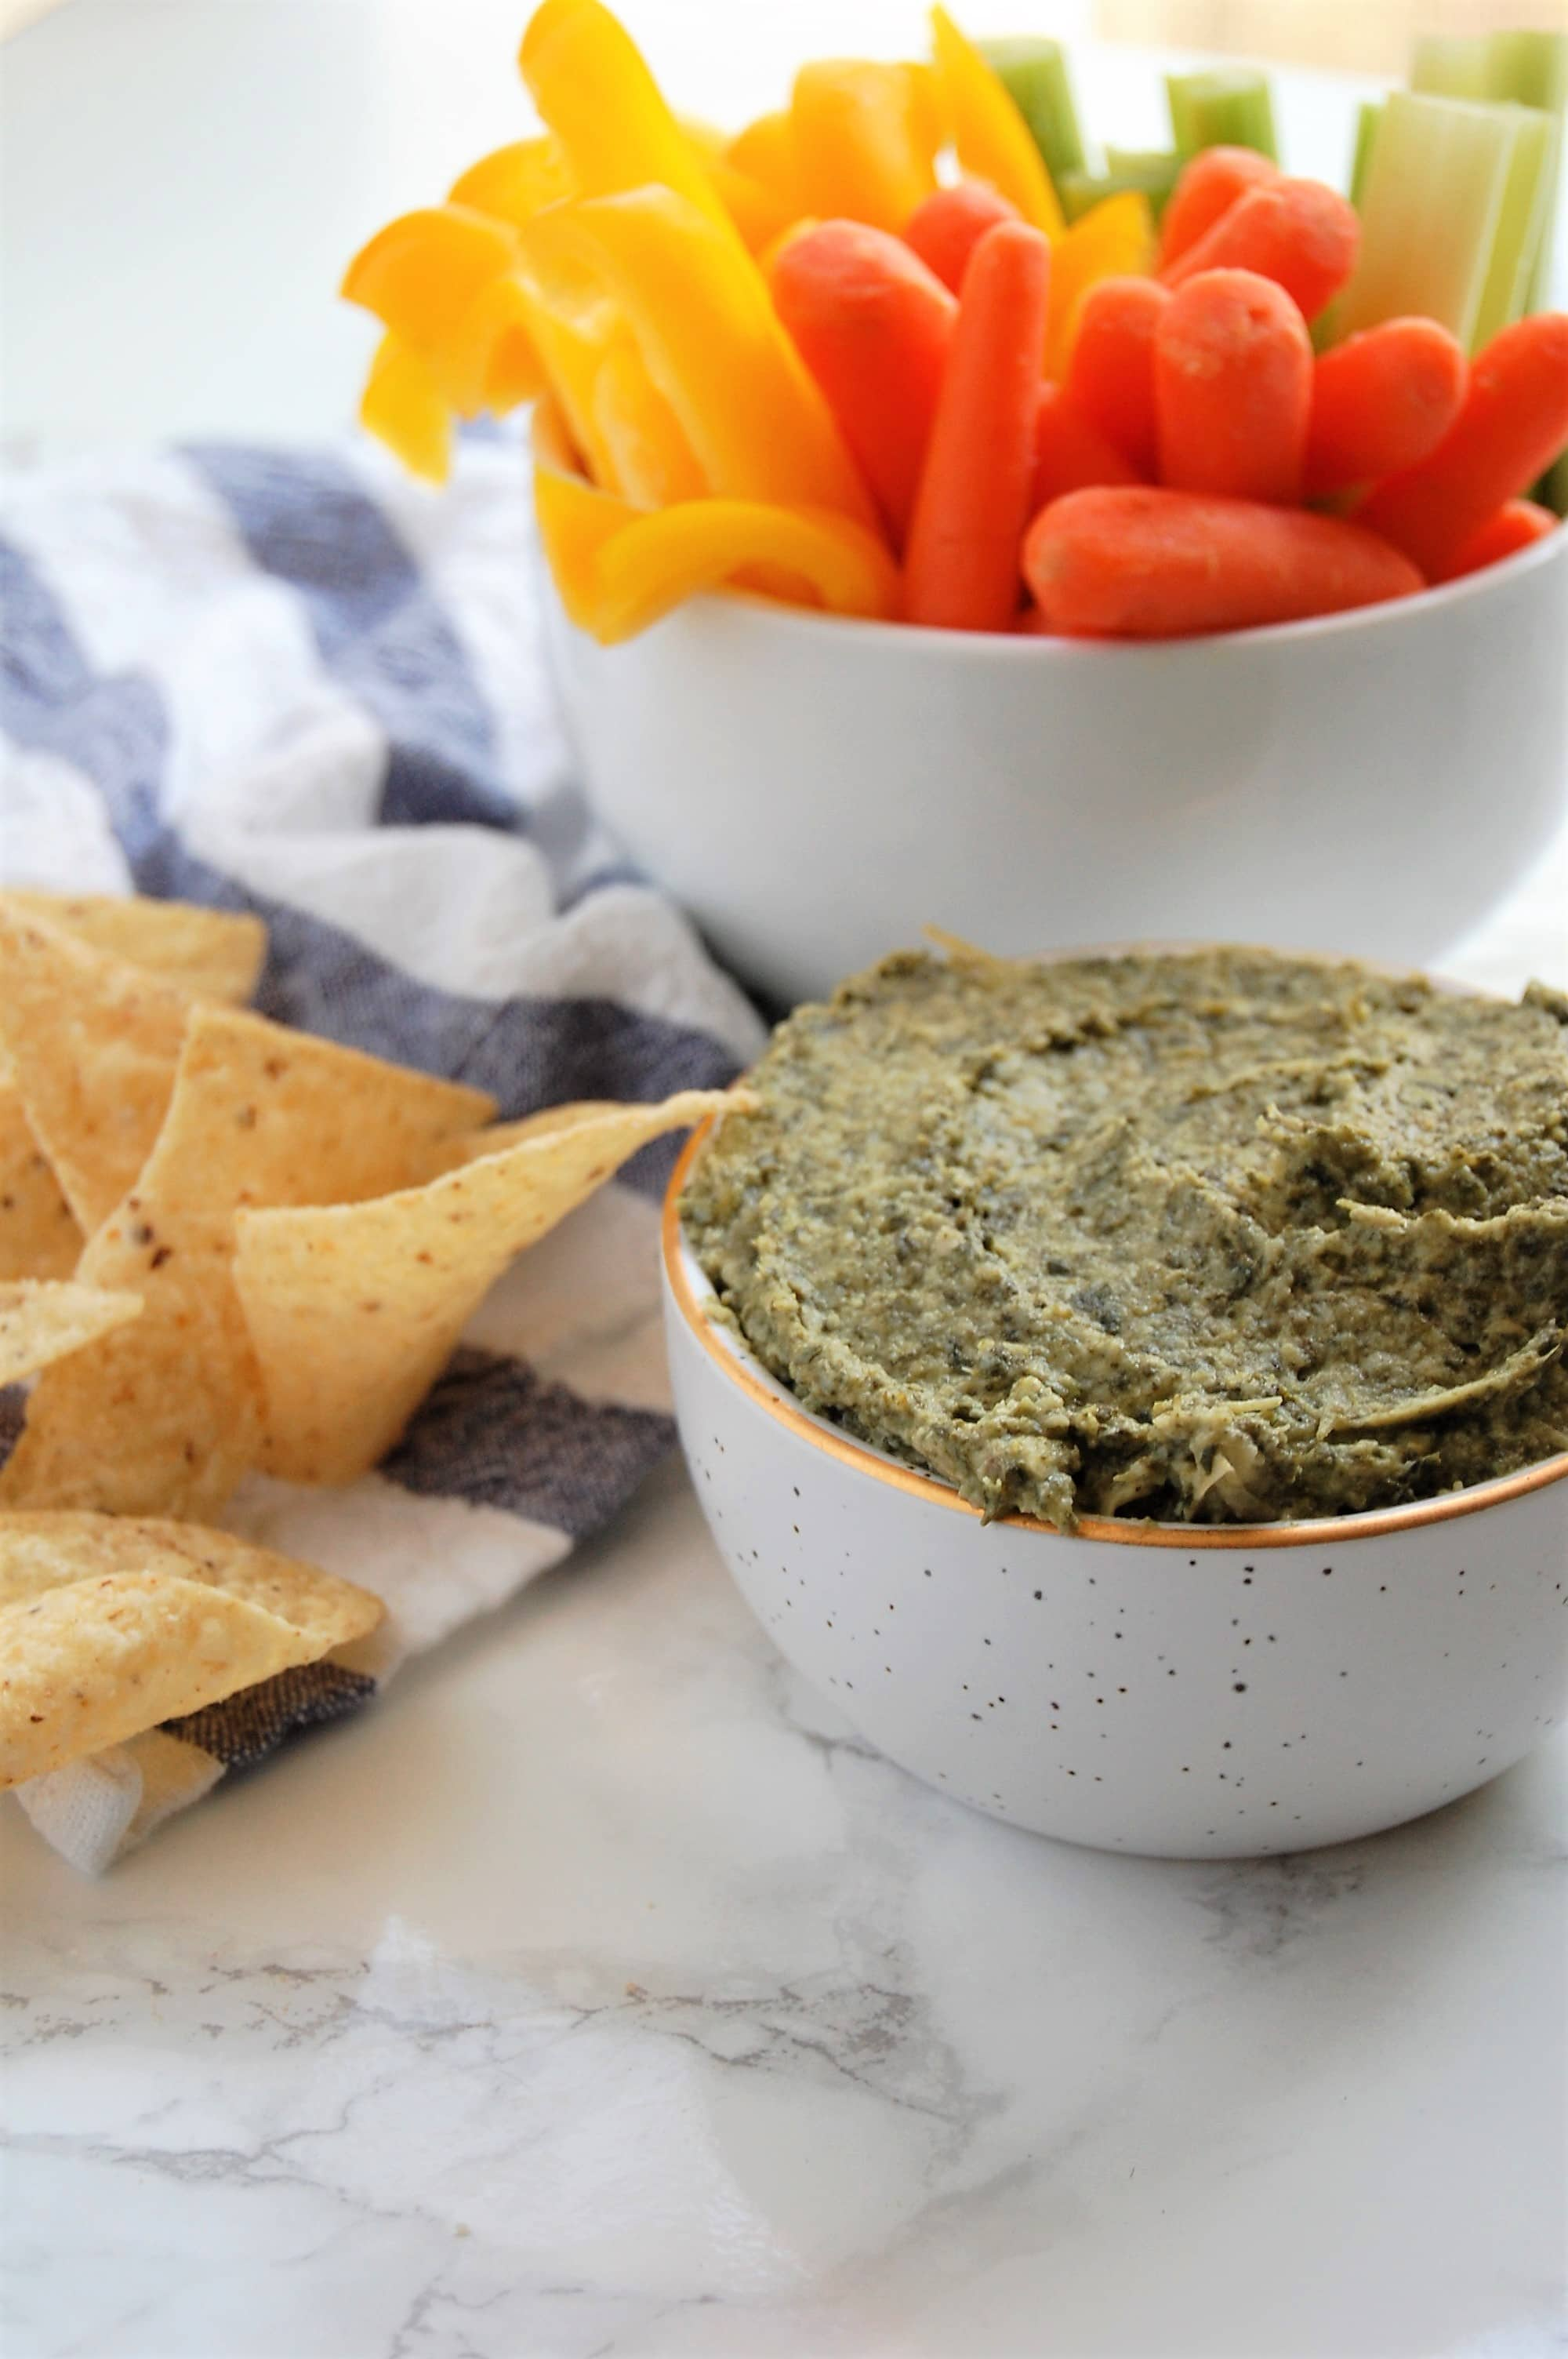 This Spinach Artichoke Dip is super easy and fast to make with just three ingredients. Bonus? It's vegan and a great option for food allergies and sensitivities!